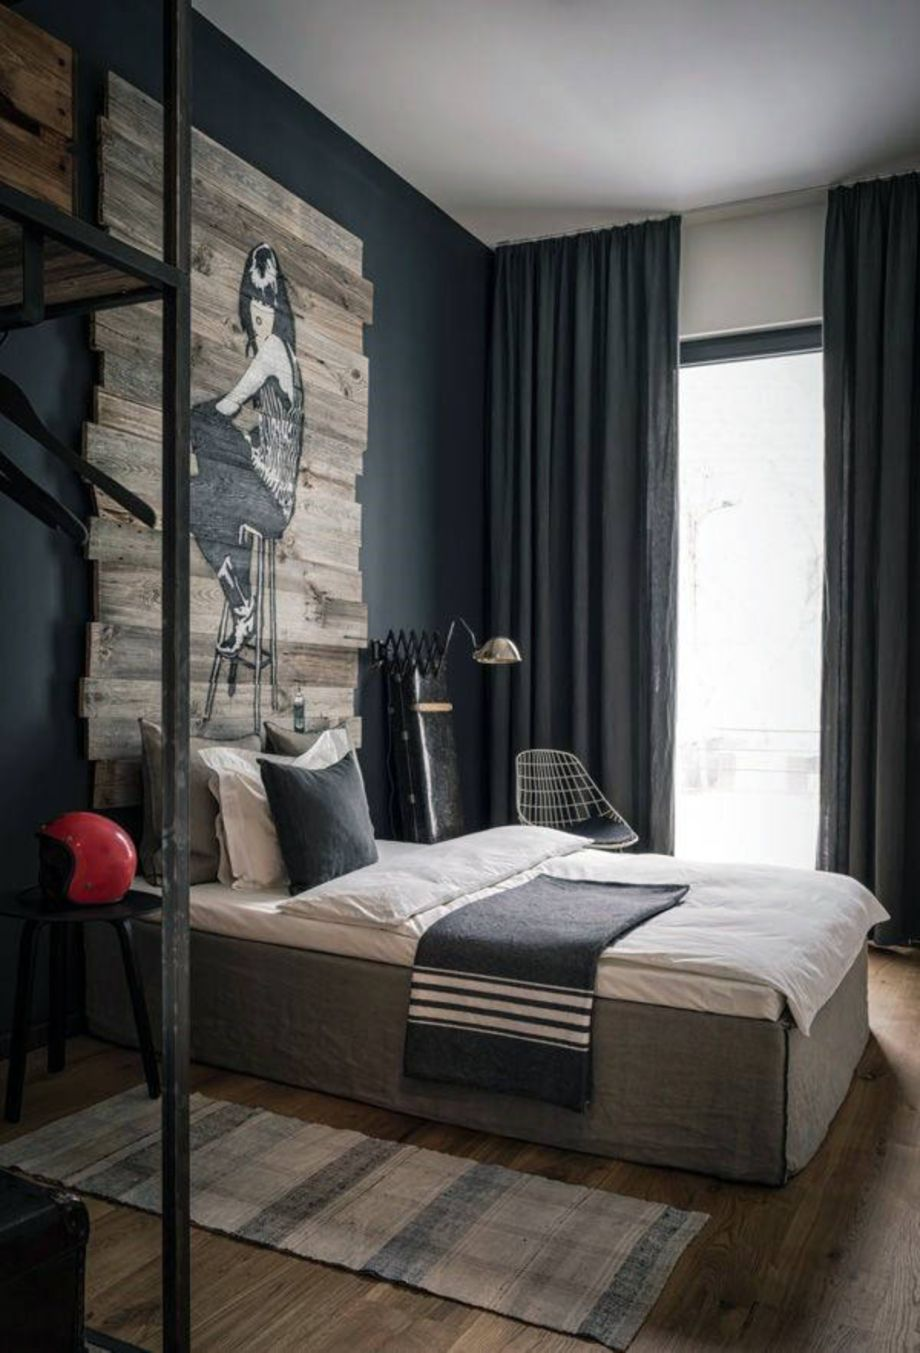 85 Cool Creative Apartment Decorations Ideas Guys Home Decor Ideas Bedroom Interior Apartment Decor Bachelor Pad Bedroom